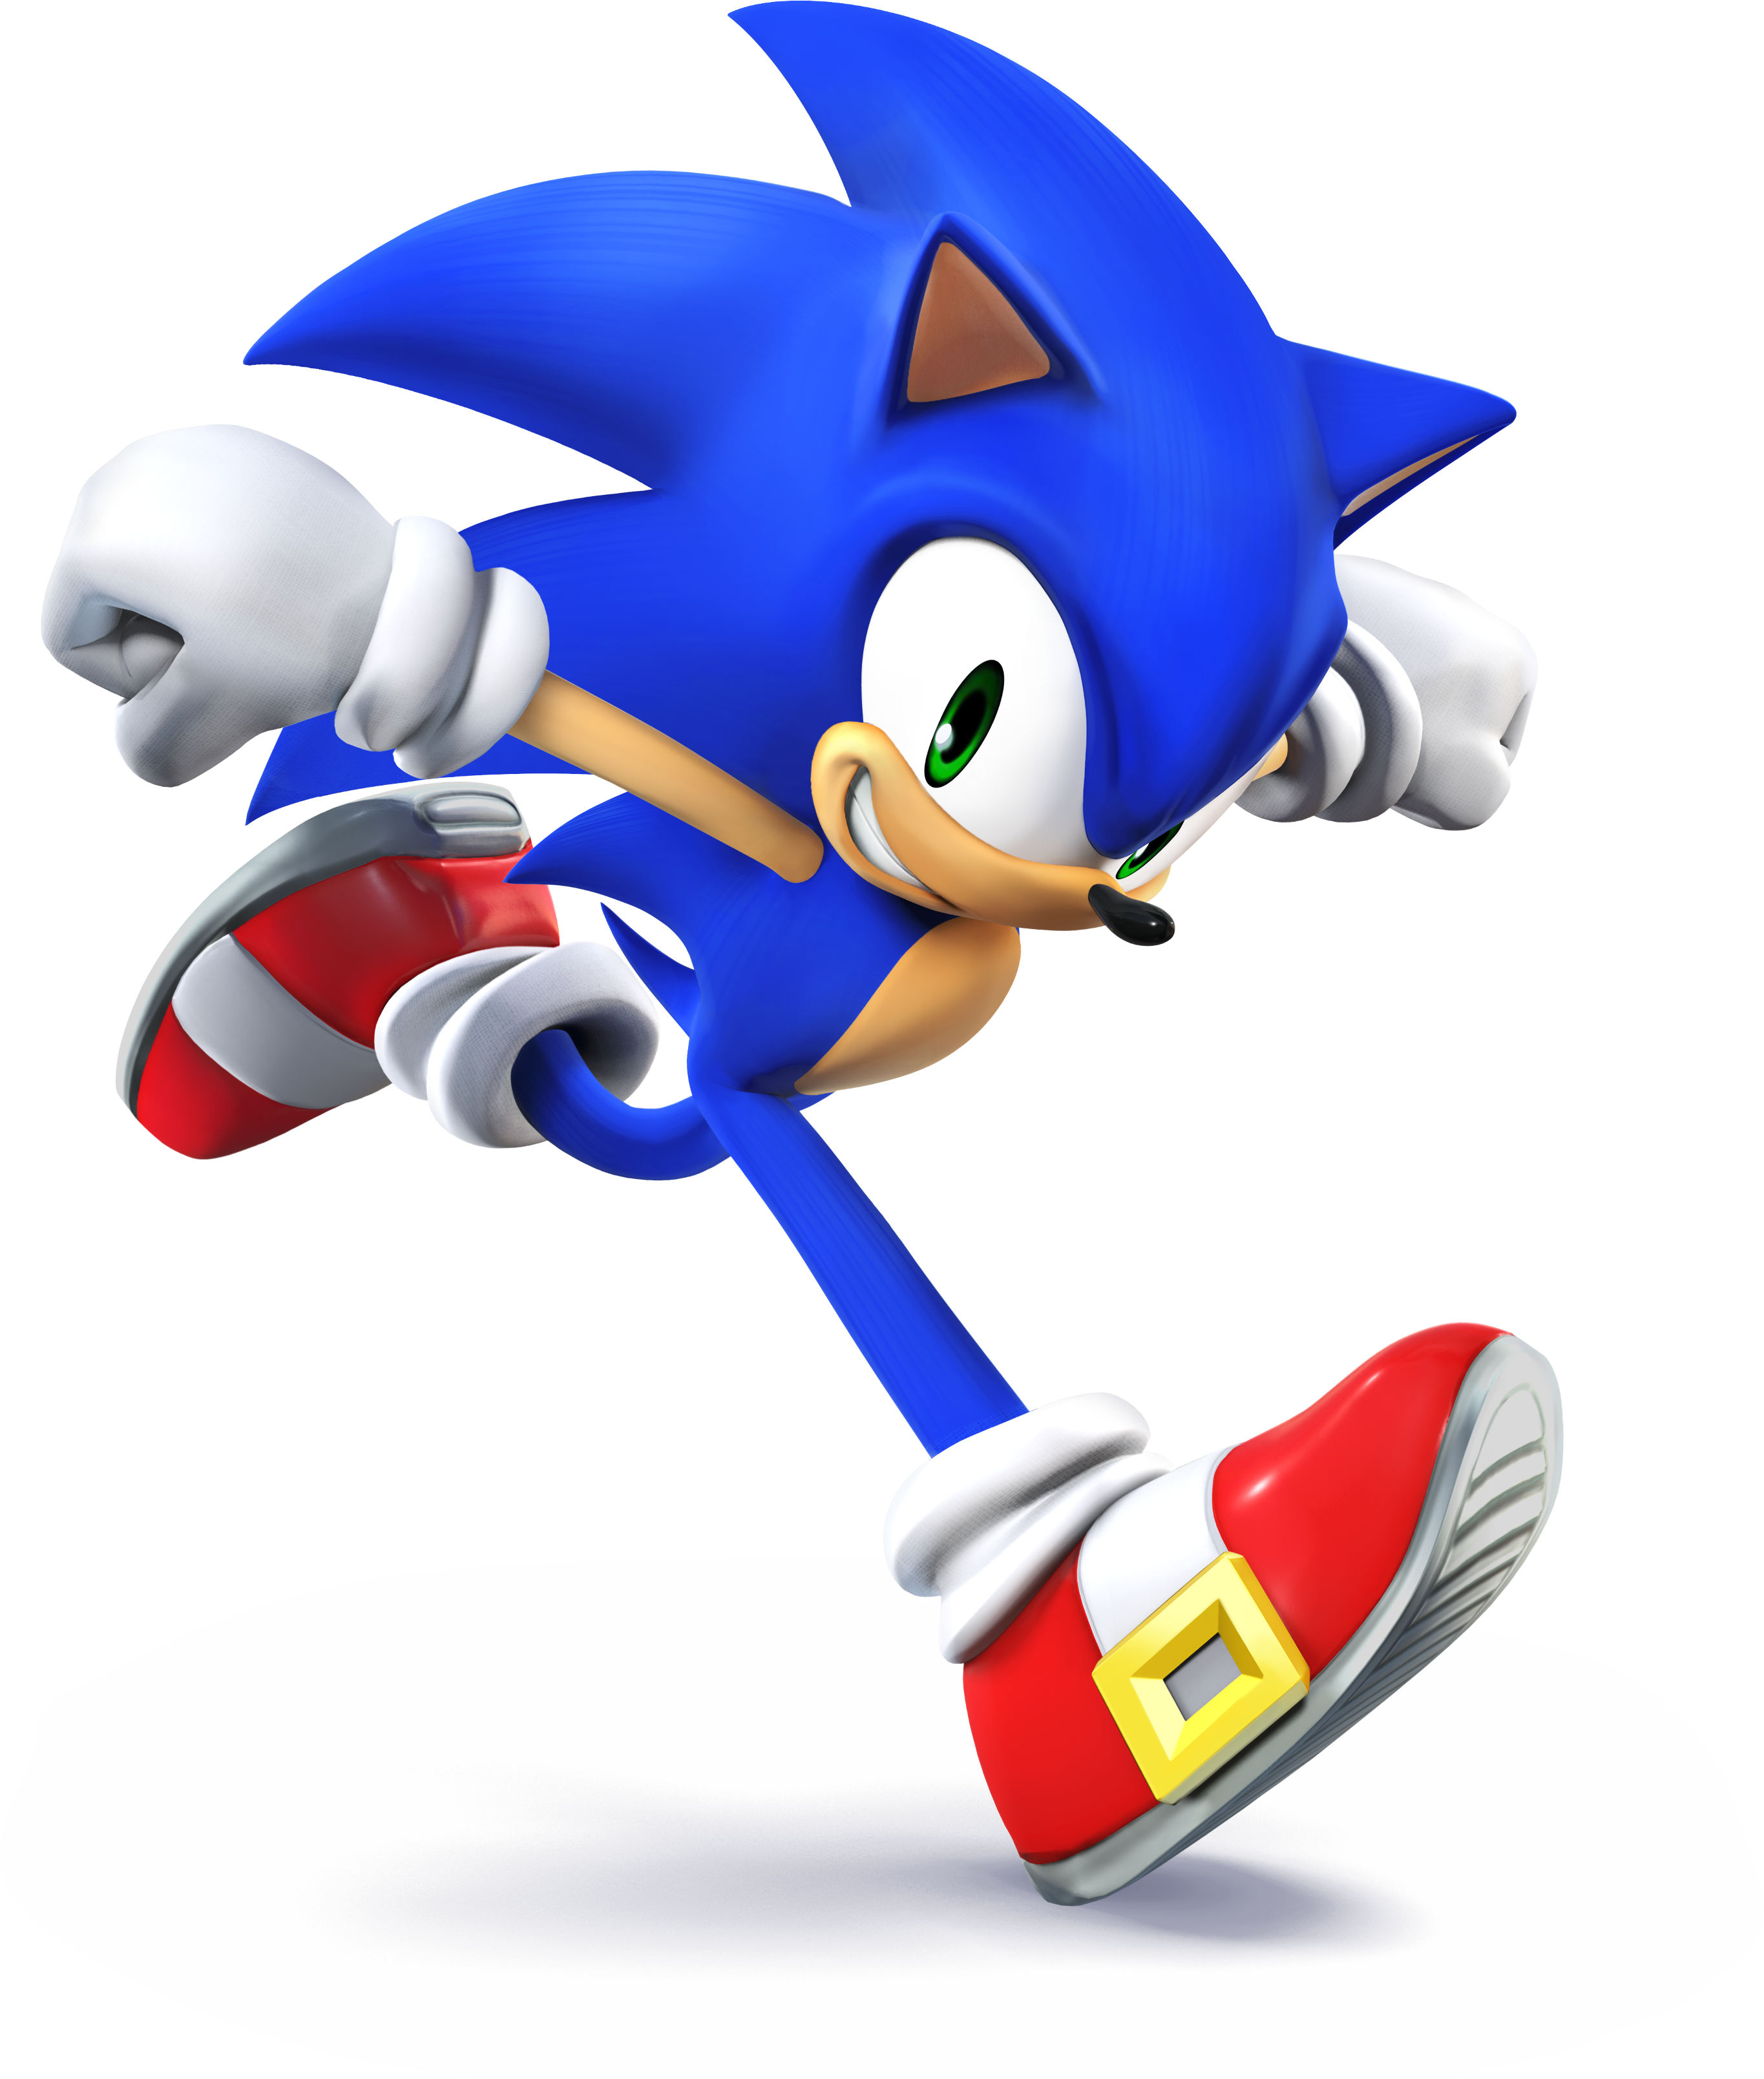 Sonic Image PNG image #20649